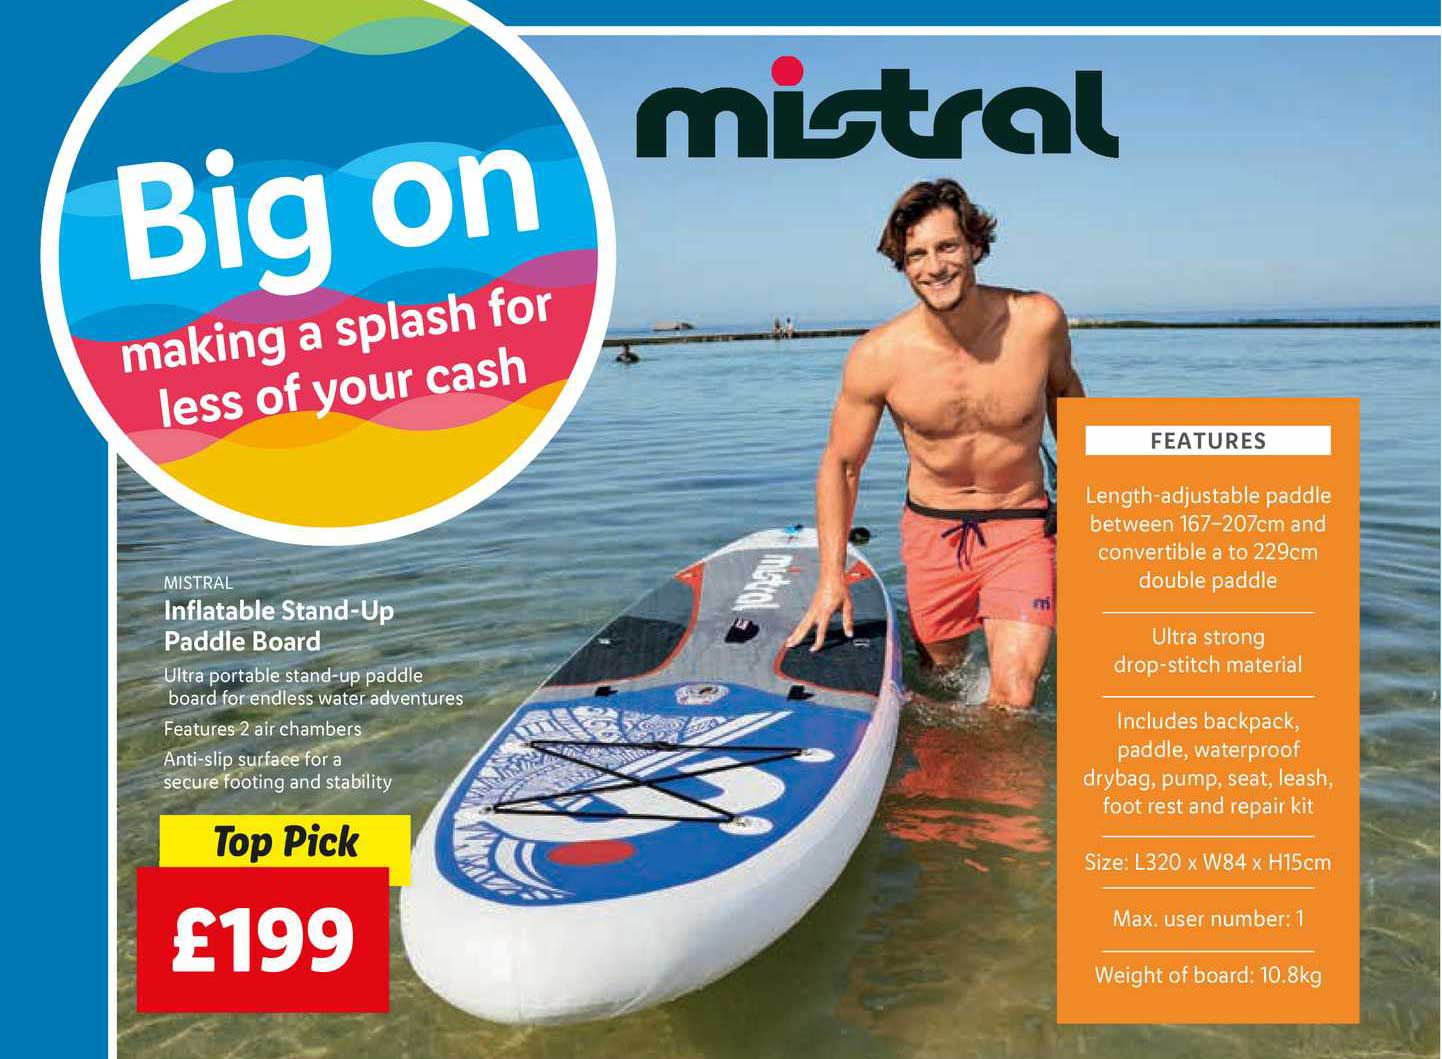 Lidl Inflatable Stand-Up Paddle Board